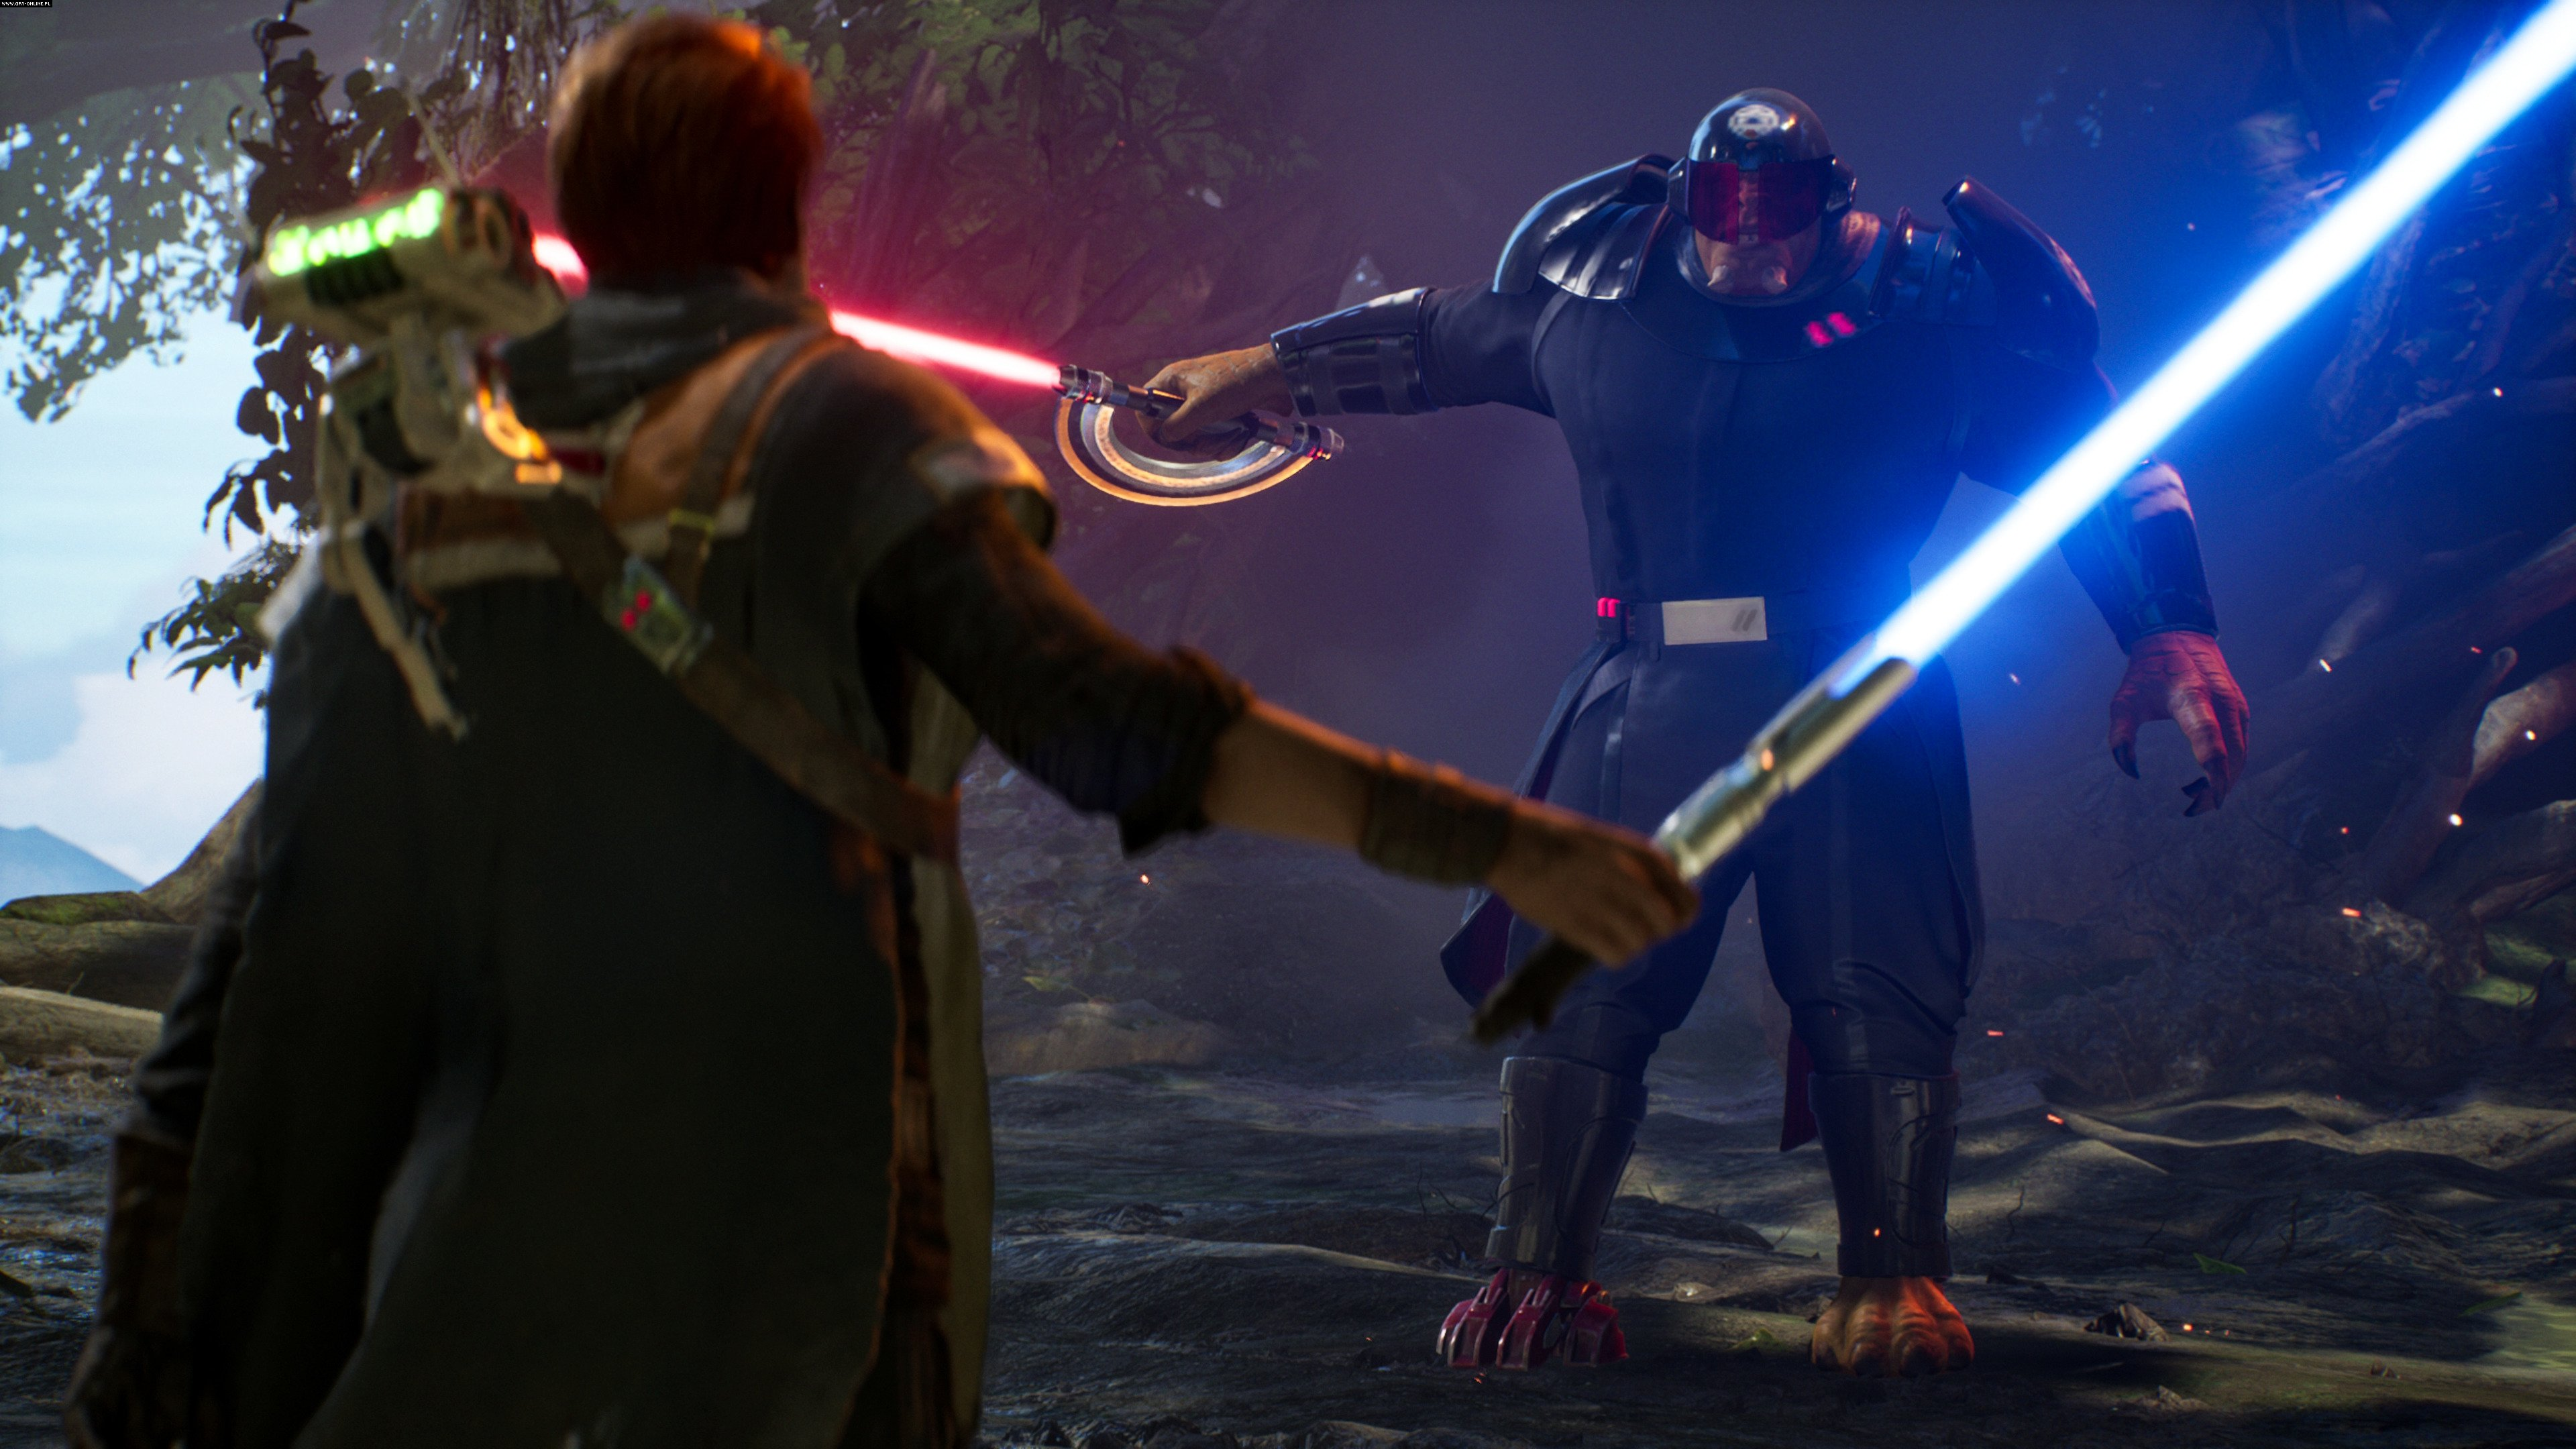 Star Wars Jedi: Fallen Order PC, PS4, XONE Games Image 9/39, Respawn Entertainment, Electronic Arts Inc.